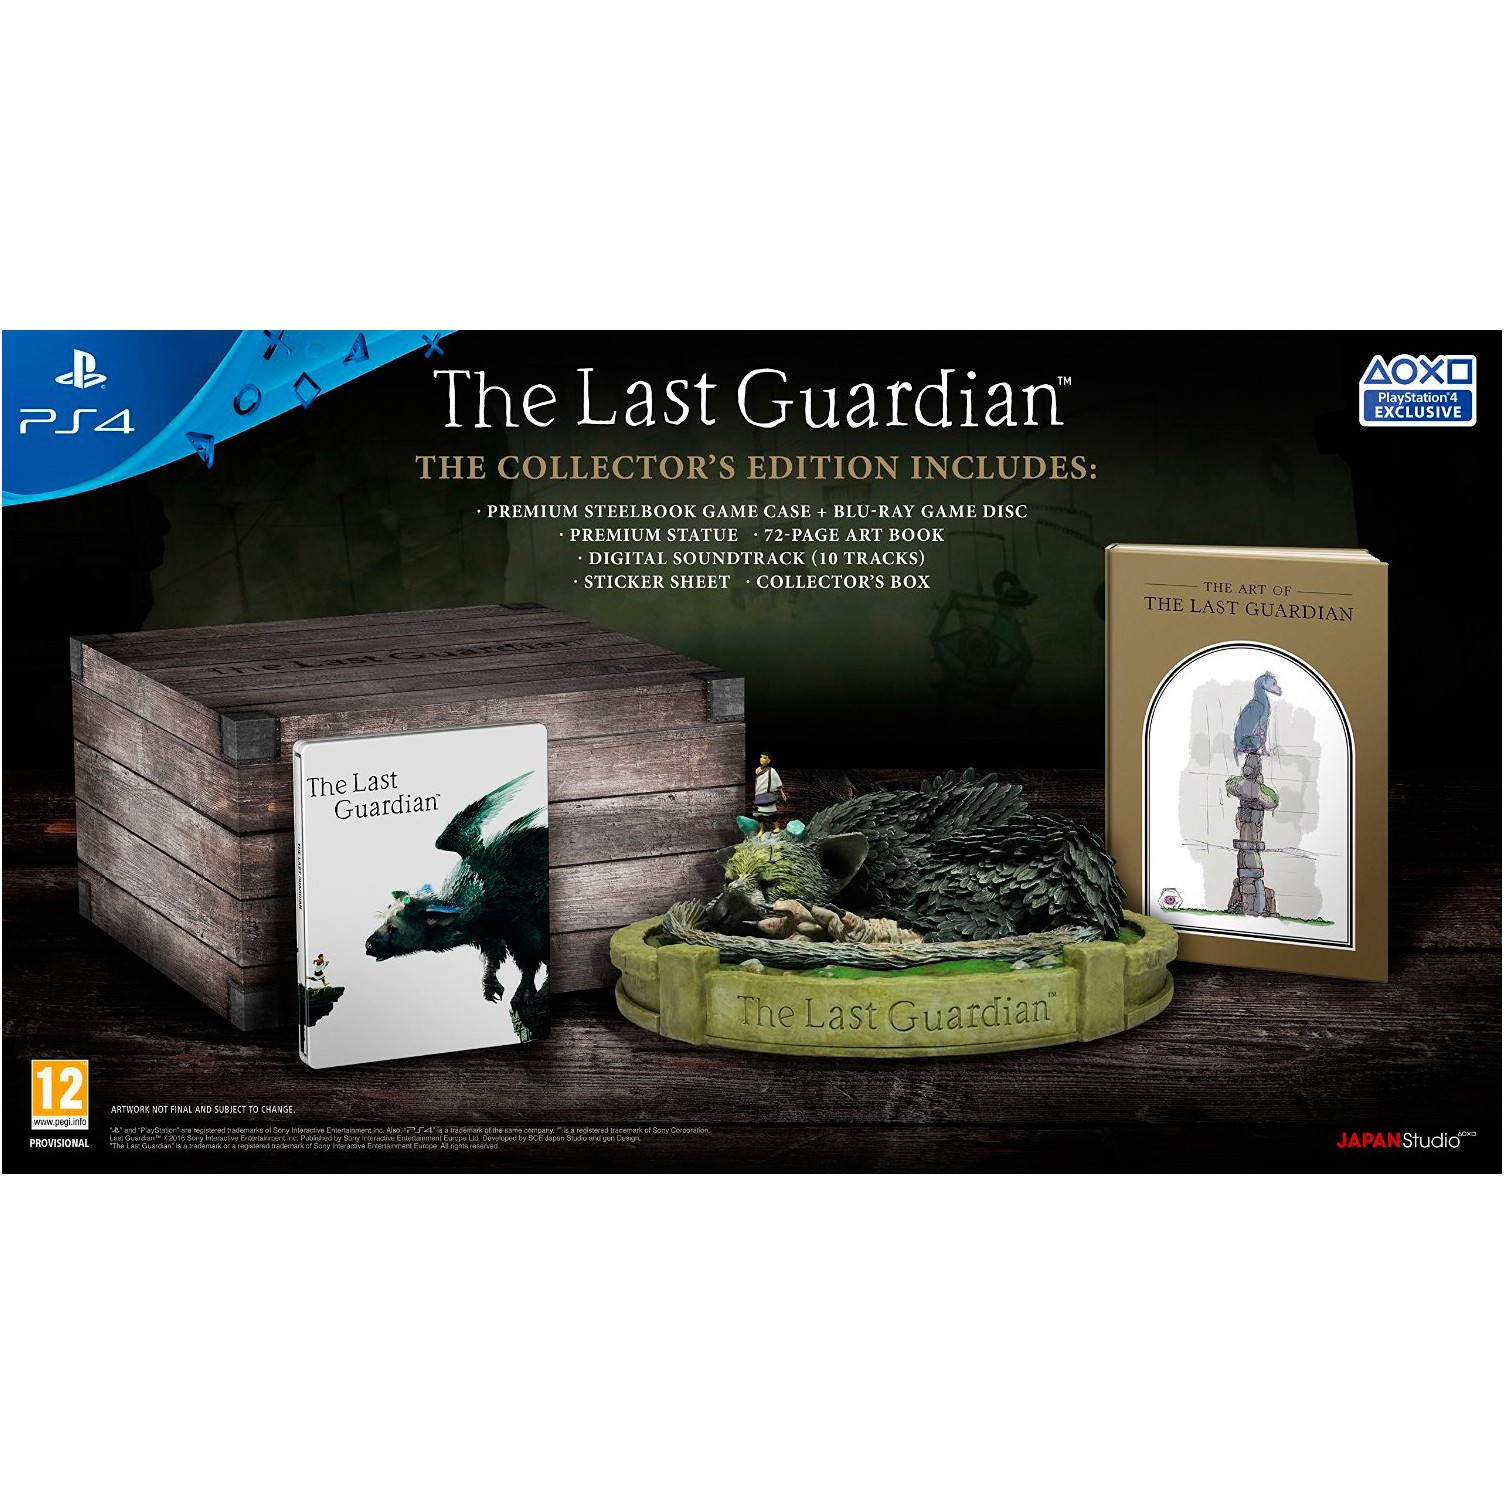 1004755 : The Last Guardian Collctor's Edition (PS4)